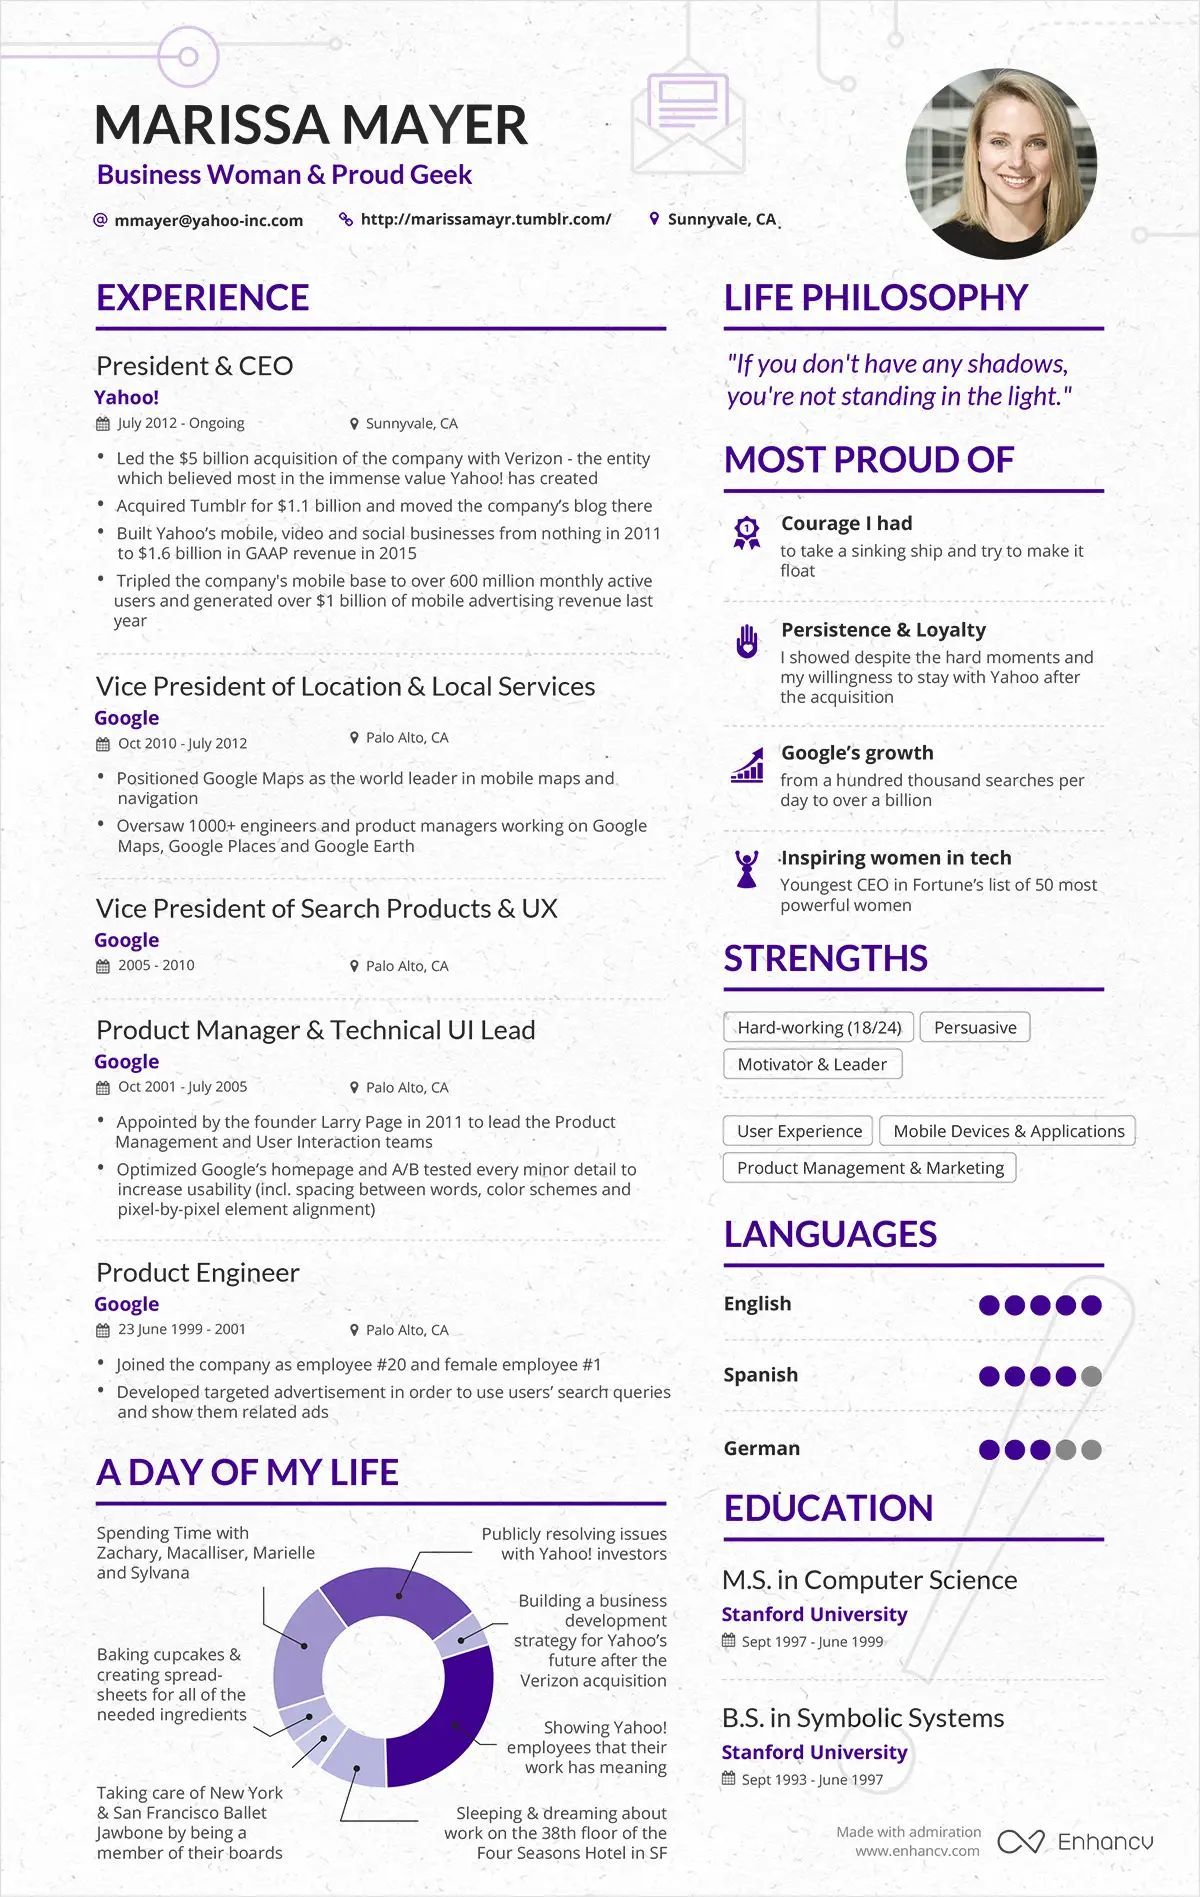 cv marissa mayer word